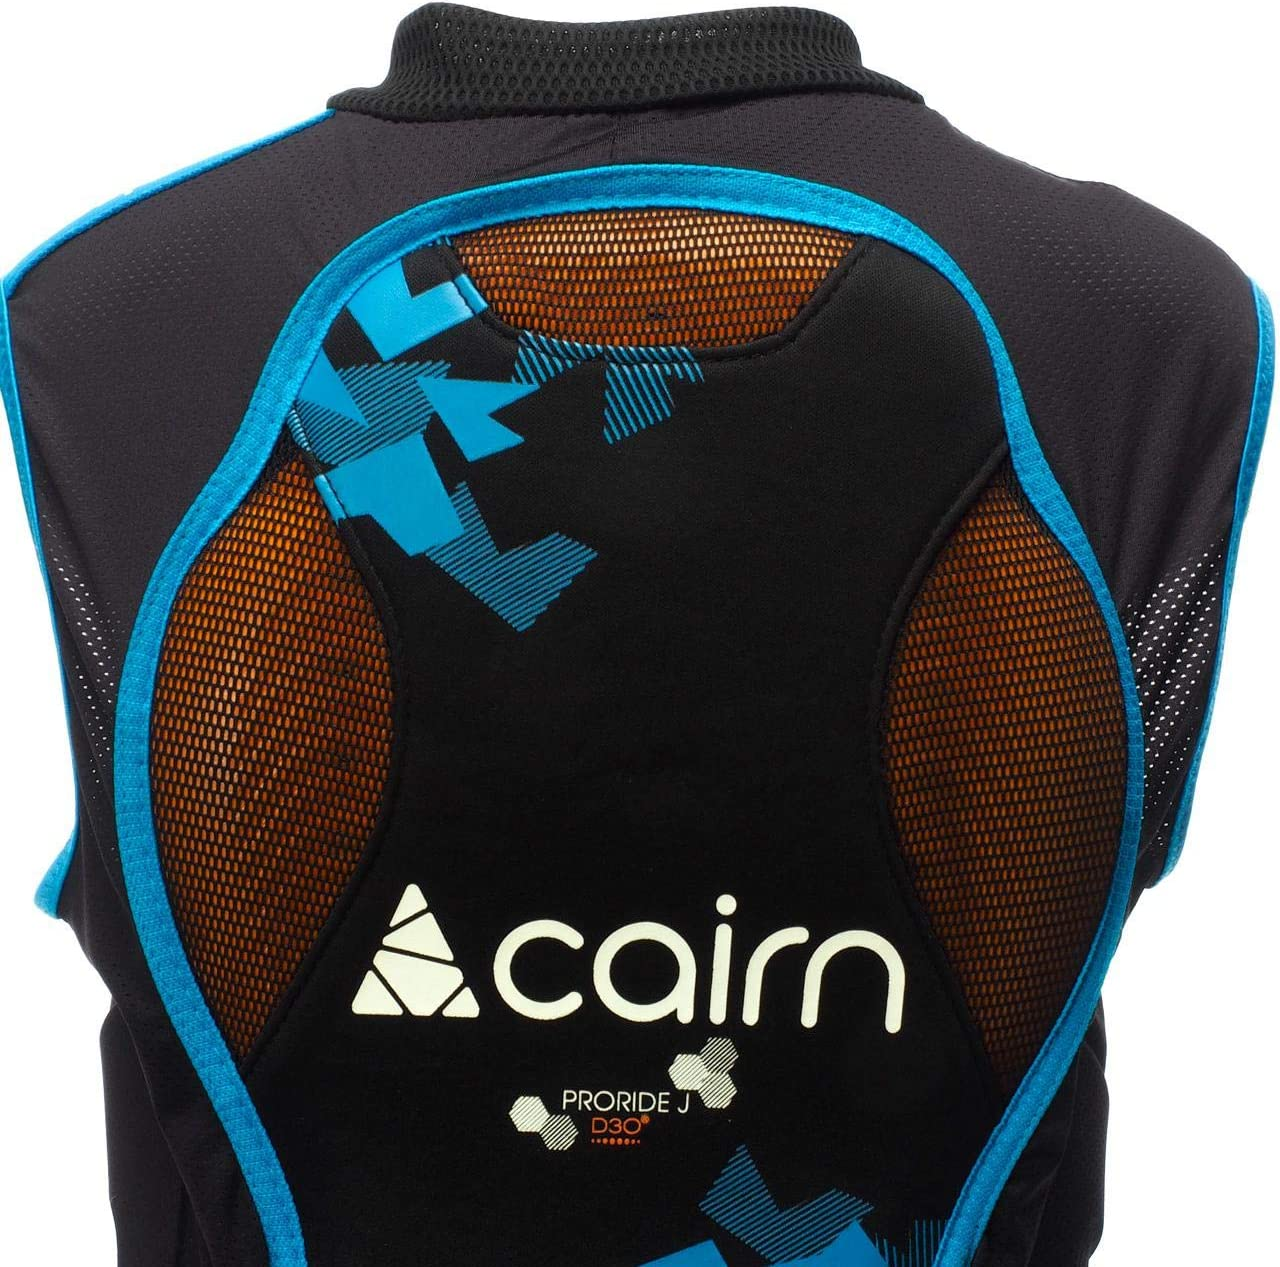 CAIRN Protection Dorsale Proride D3o J